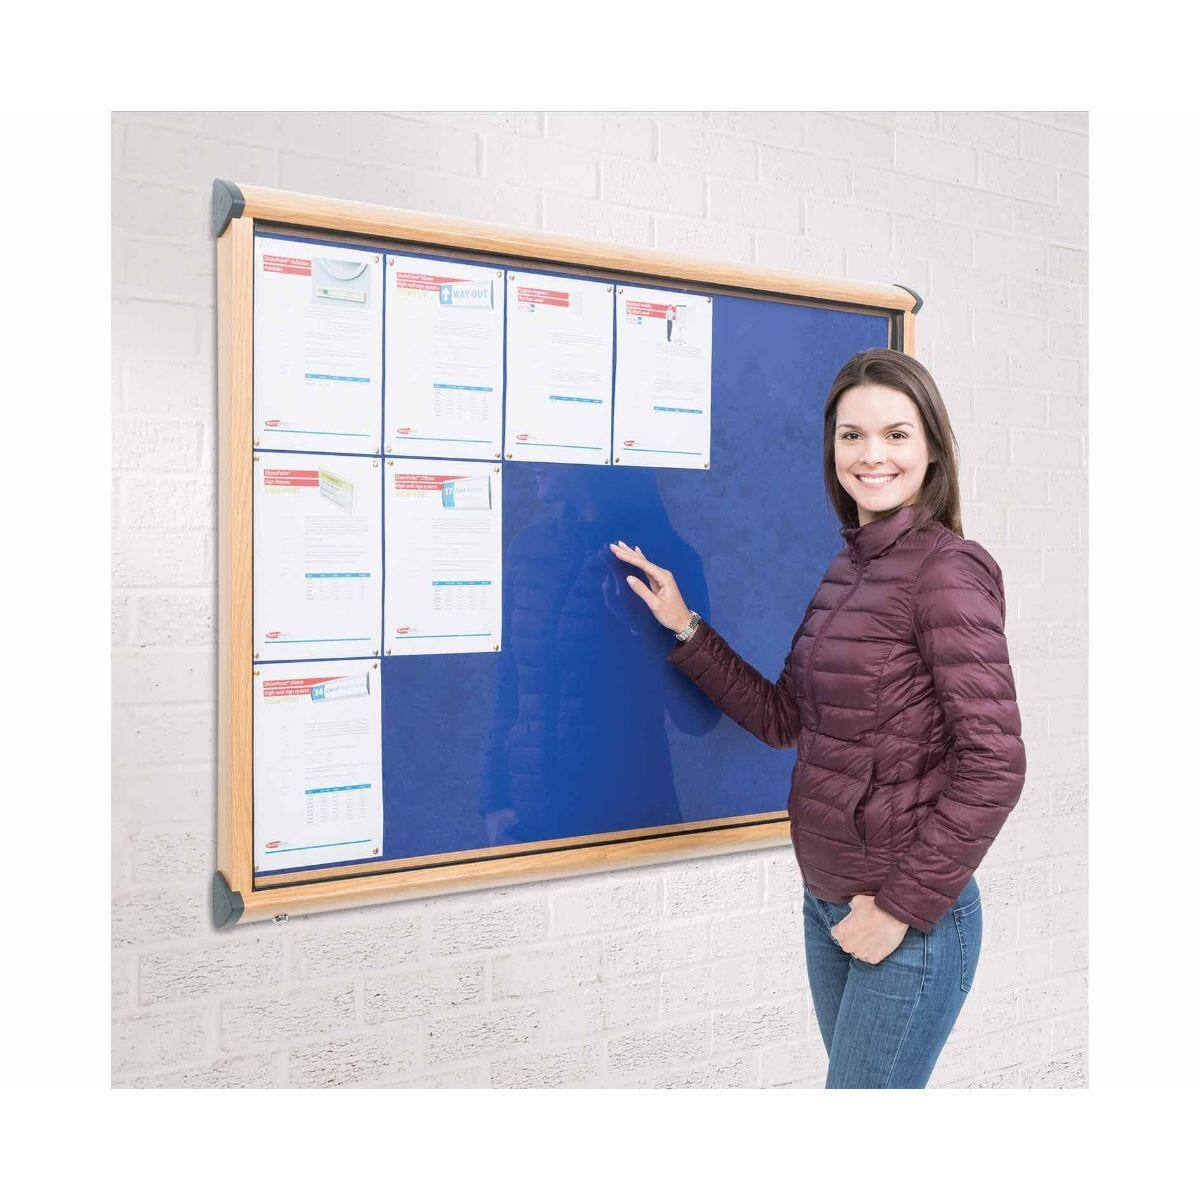 Metroplan Shield Wood Effect Exterior Showcase Display Board Fits 8 x A4 Landscape